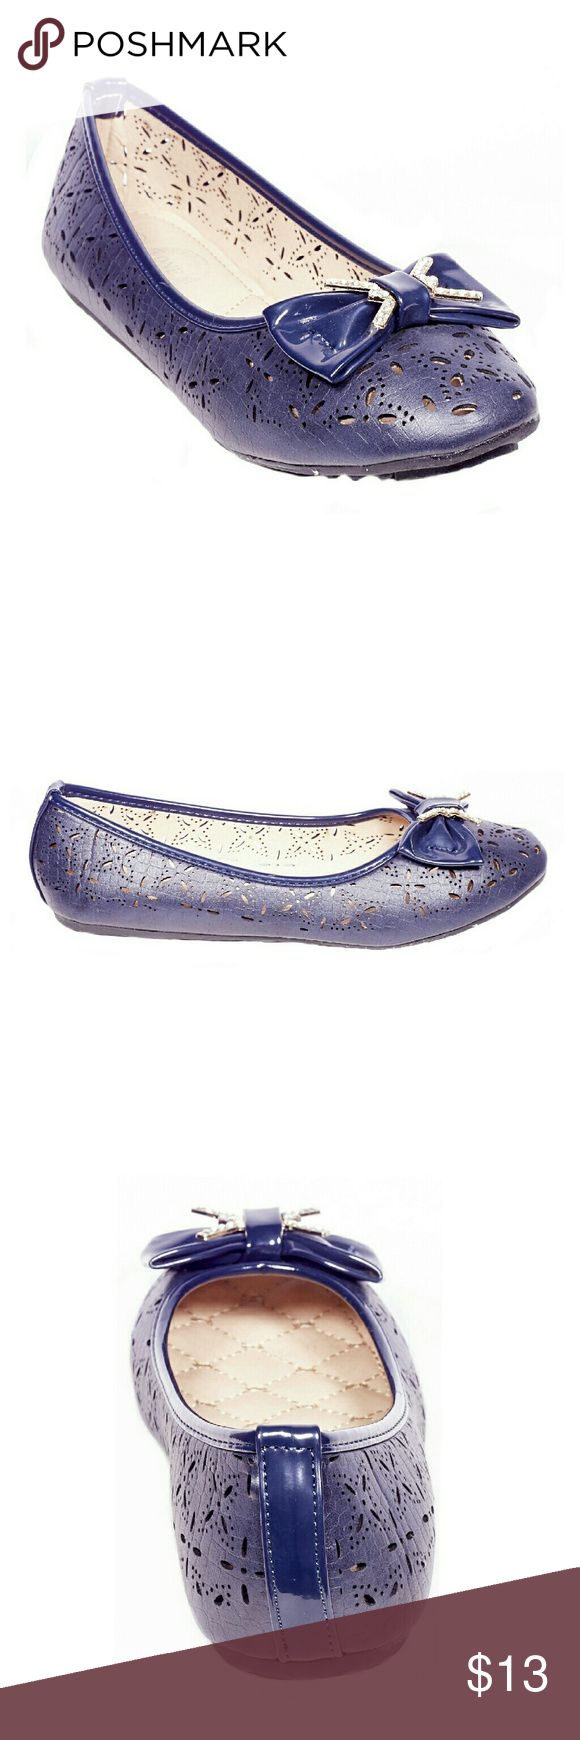 ONE Tory K Perforated Flats w.bow, b-2057 Brand new Victoria K perforated ballerina flats with a stylish bow and stone-studded buckle in the front. From the ONE collection. Soft cushioned sole, very comfortable, true to size. Bubbled bottom sole for extra traction. Tory K  Shoes Flats & Loafers